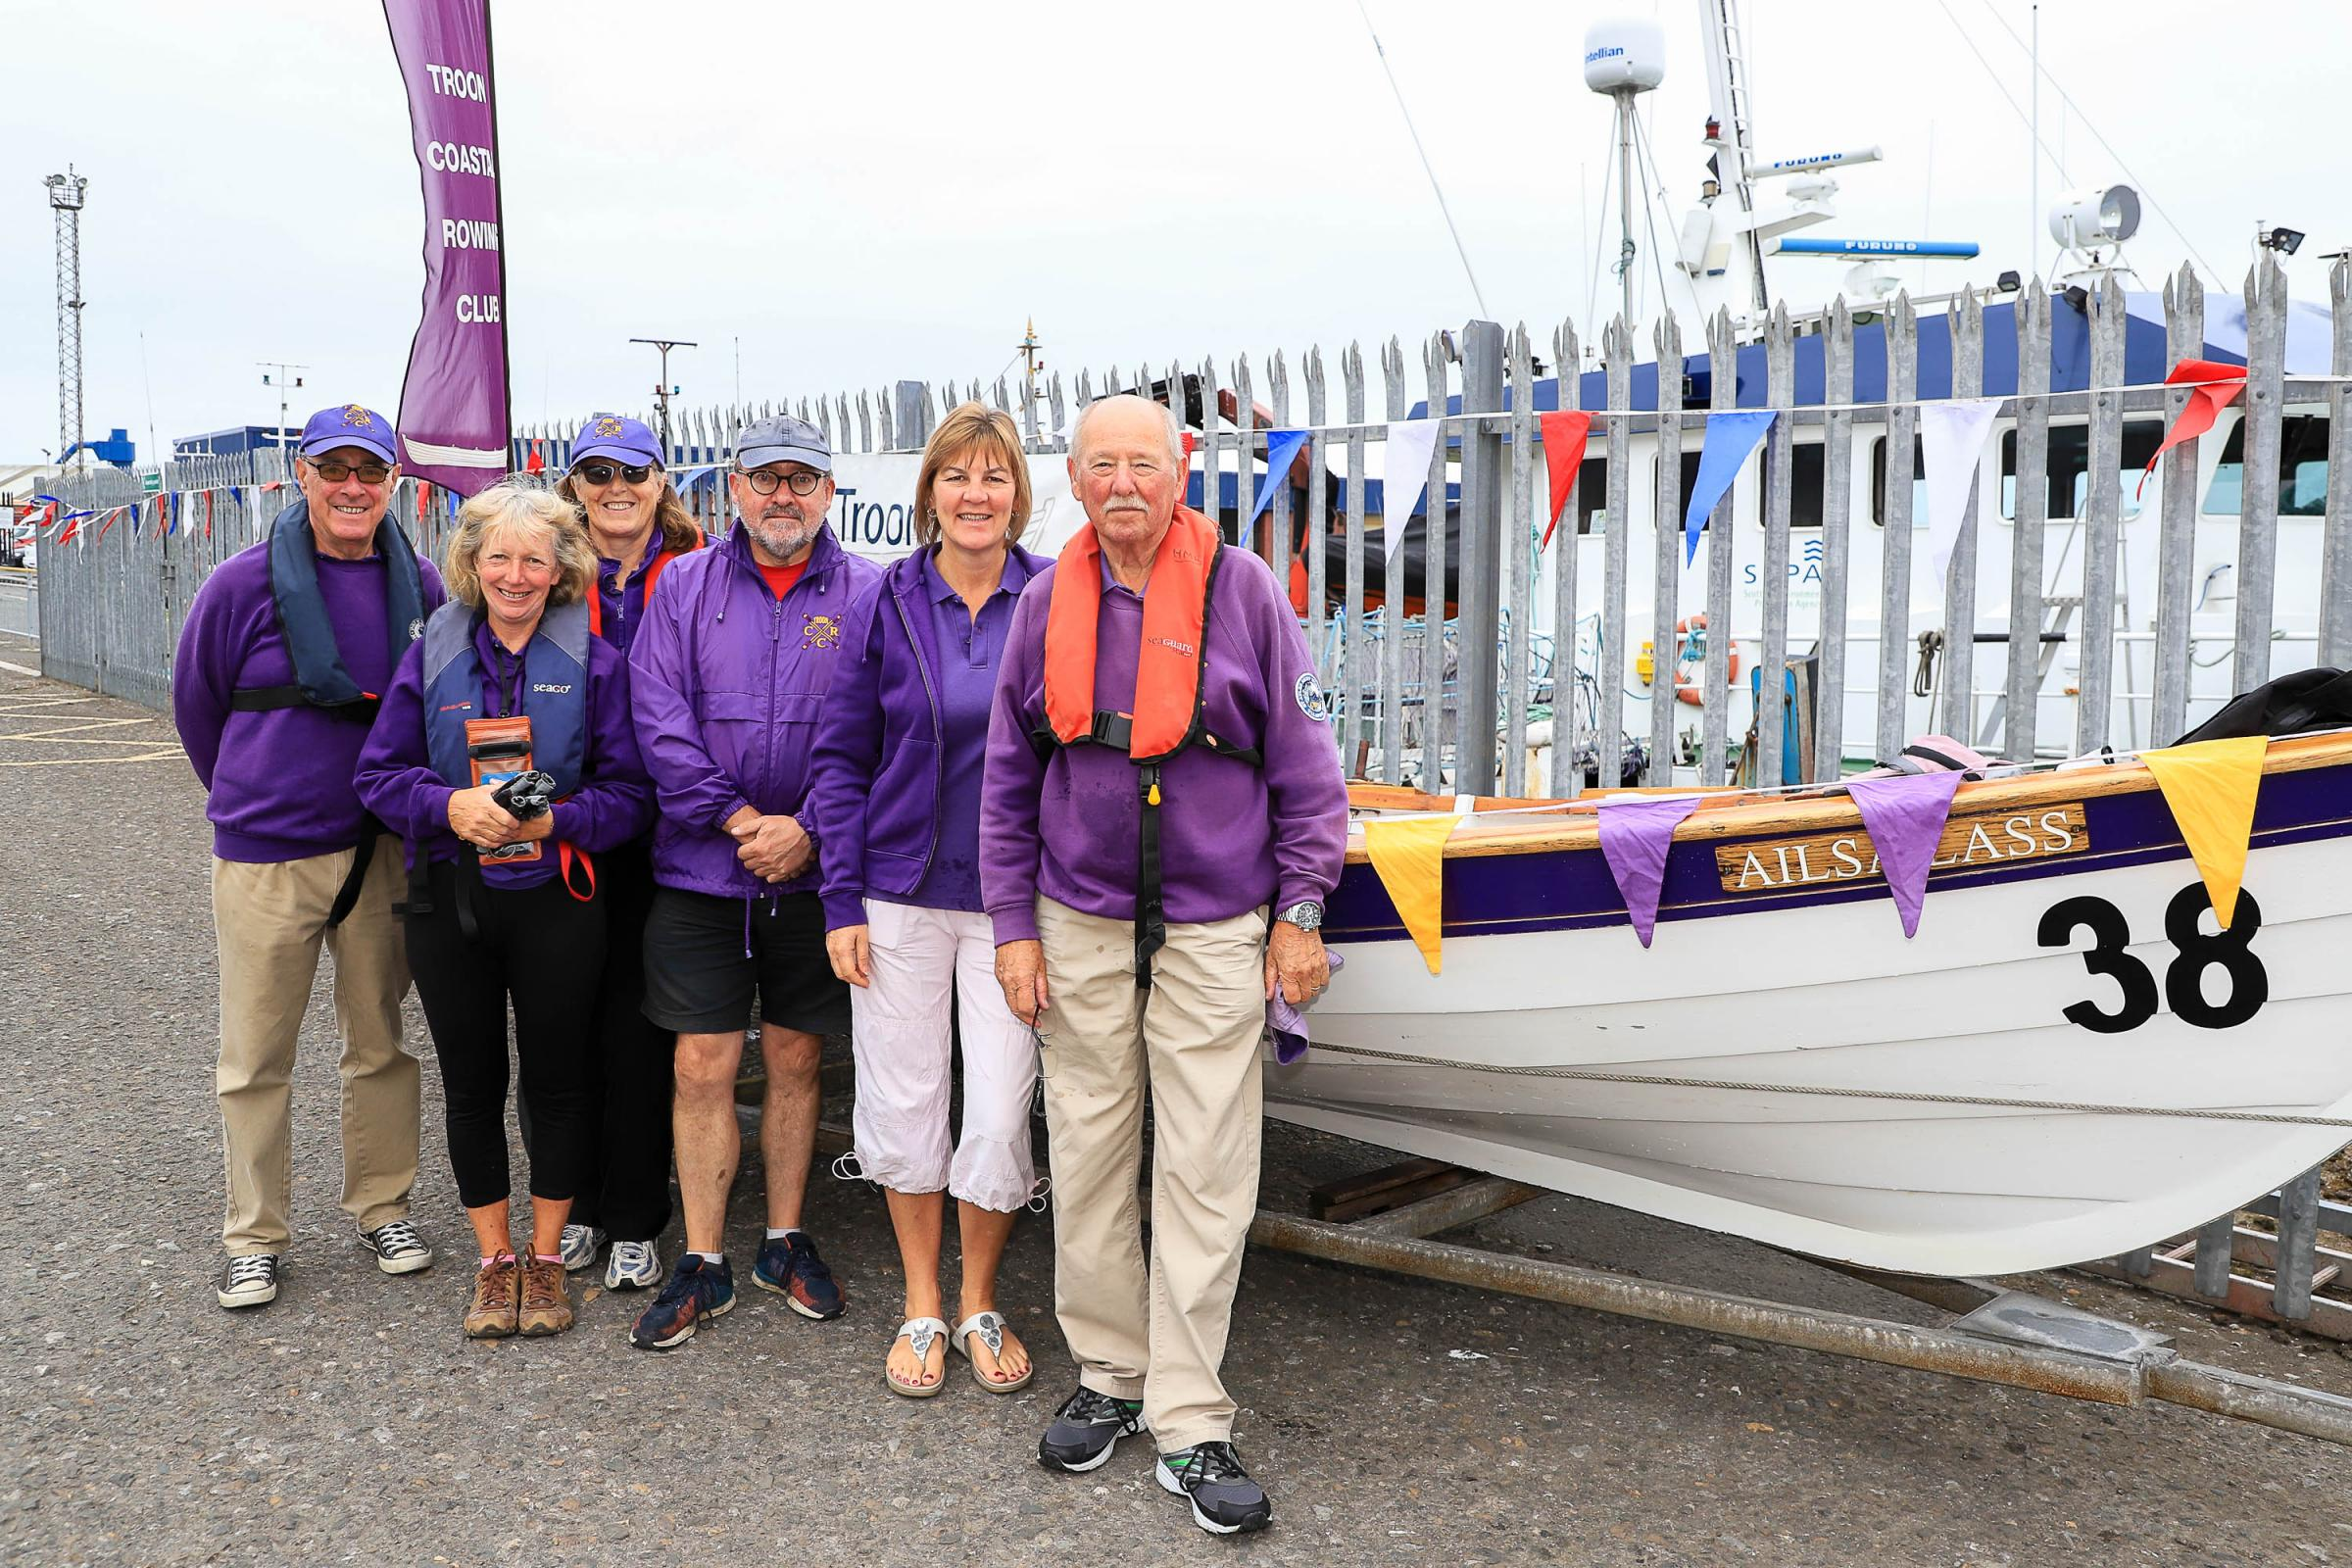 Lifeboat open day's success